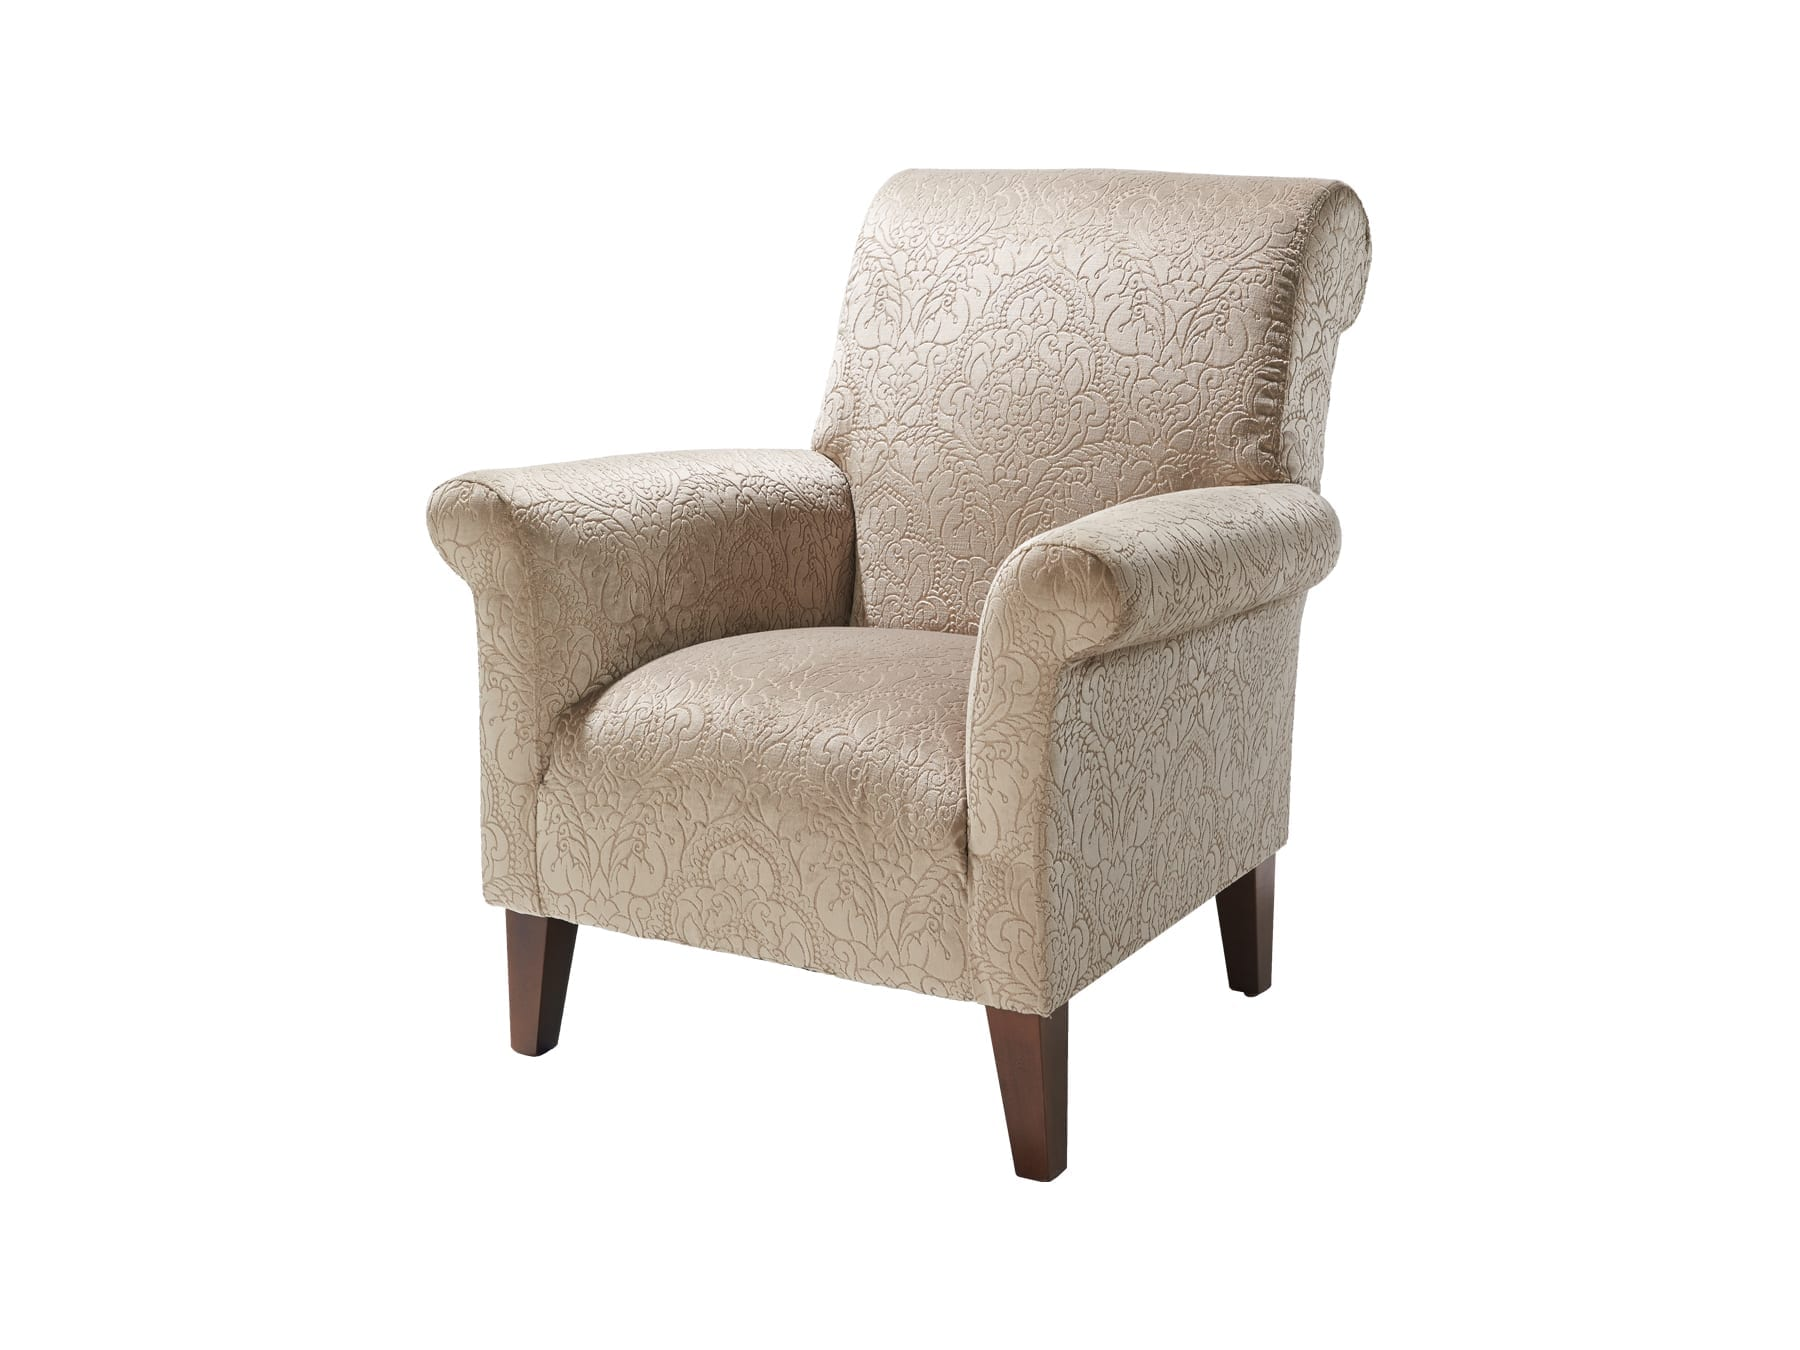 Pace Furniture Jonty Armchair available at McKenzie & Willis